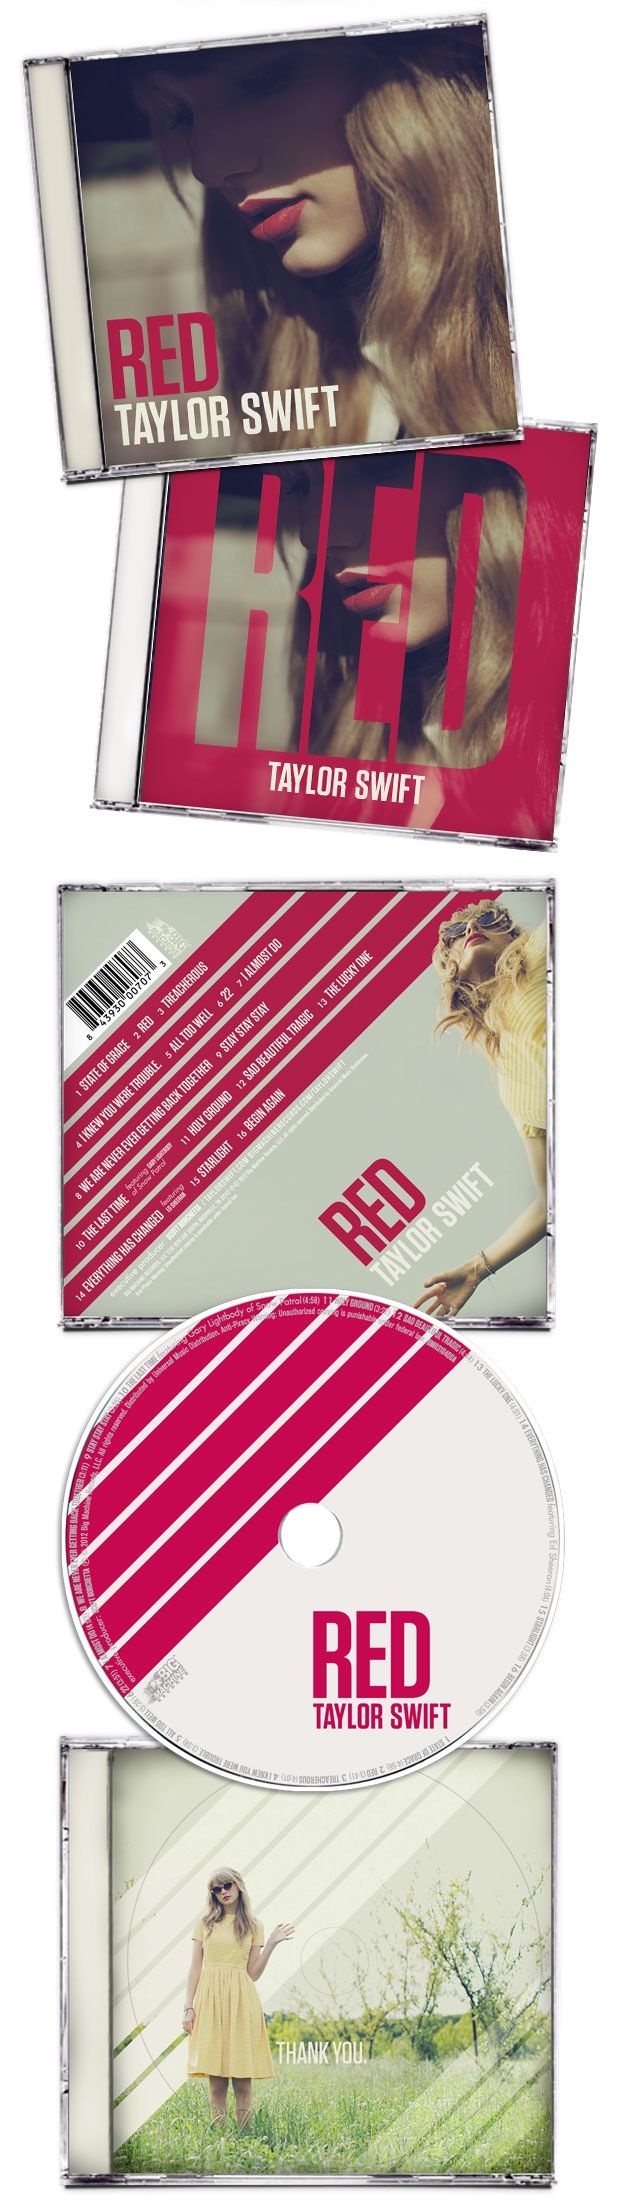 Taylor Swifts new album design is dope. Just say'n - Good work @Hale_Yeah via @Tami Harwood blog